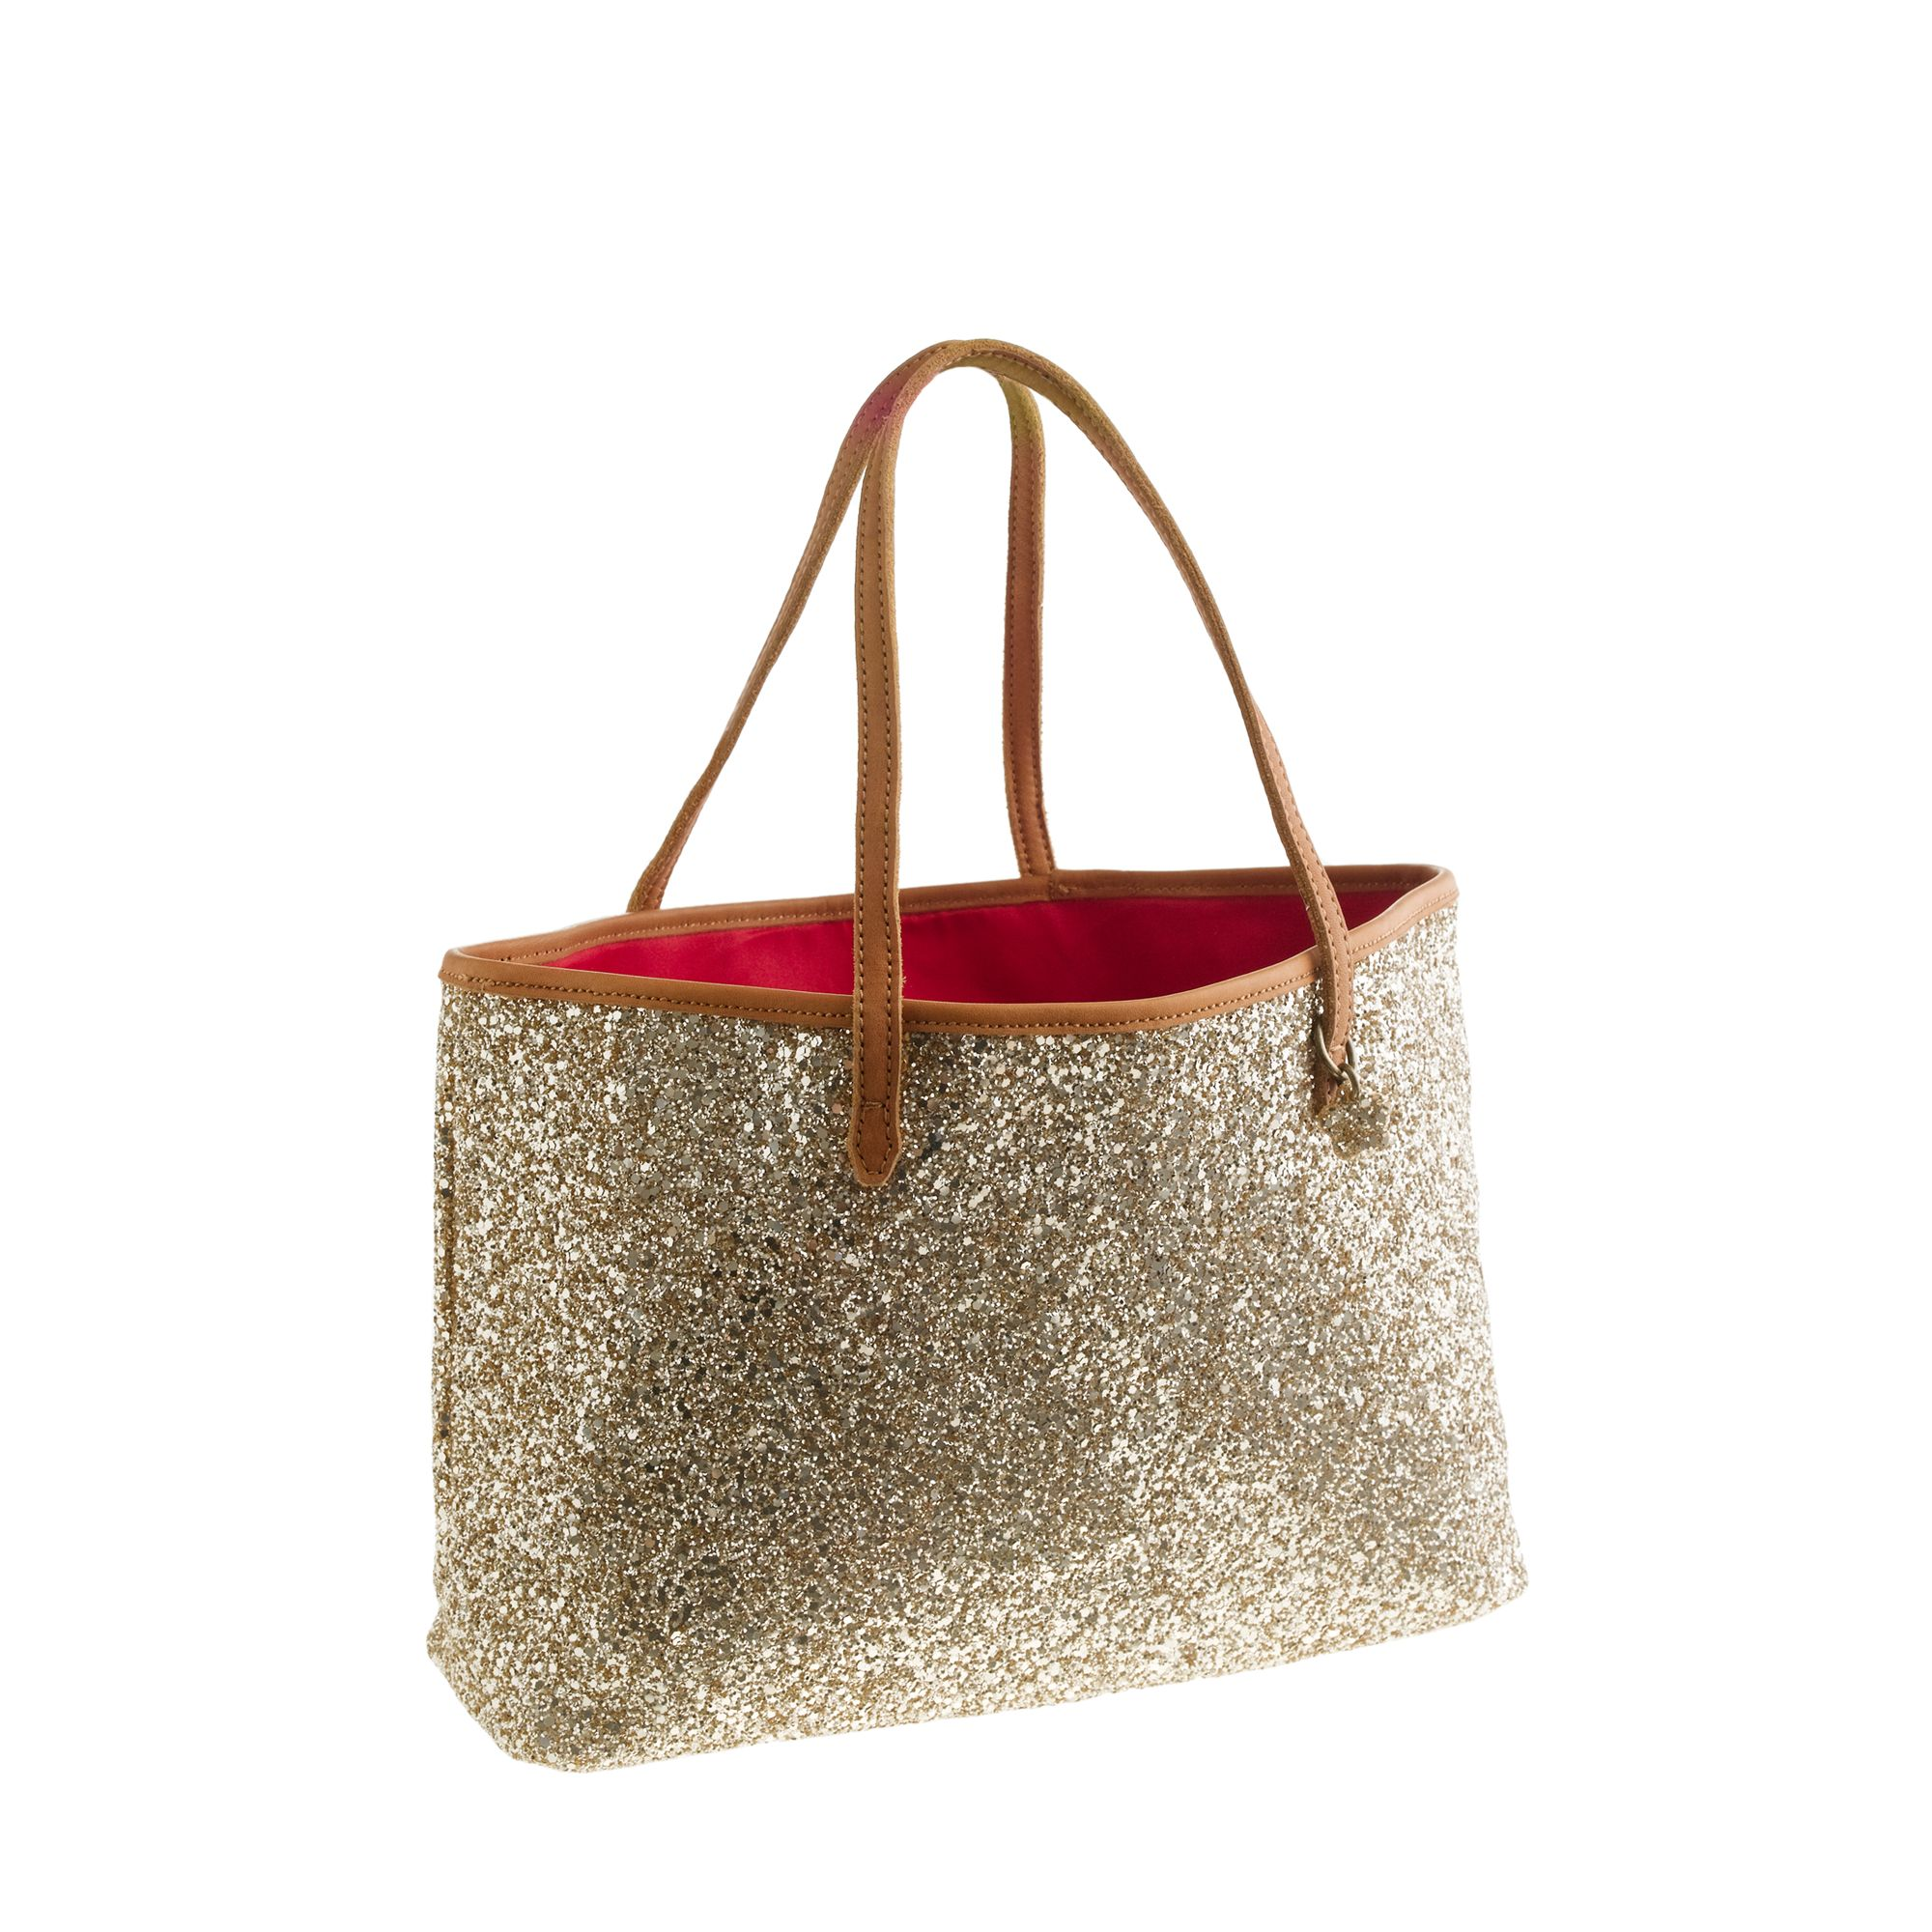 J.crew Girls Glitter Tote Bag in Metallic | Lyst